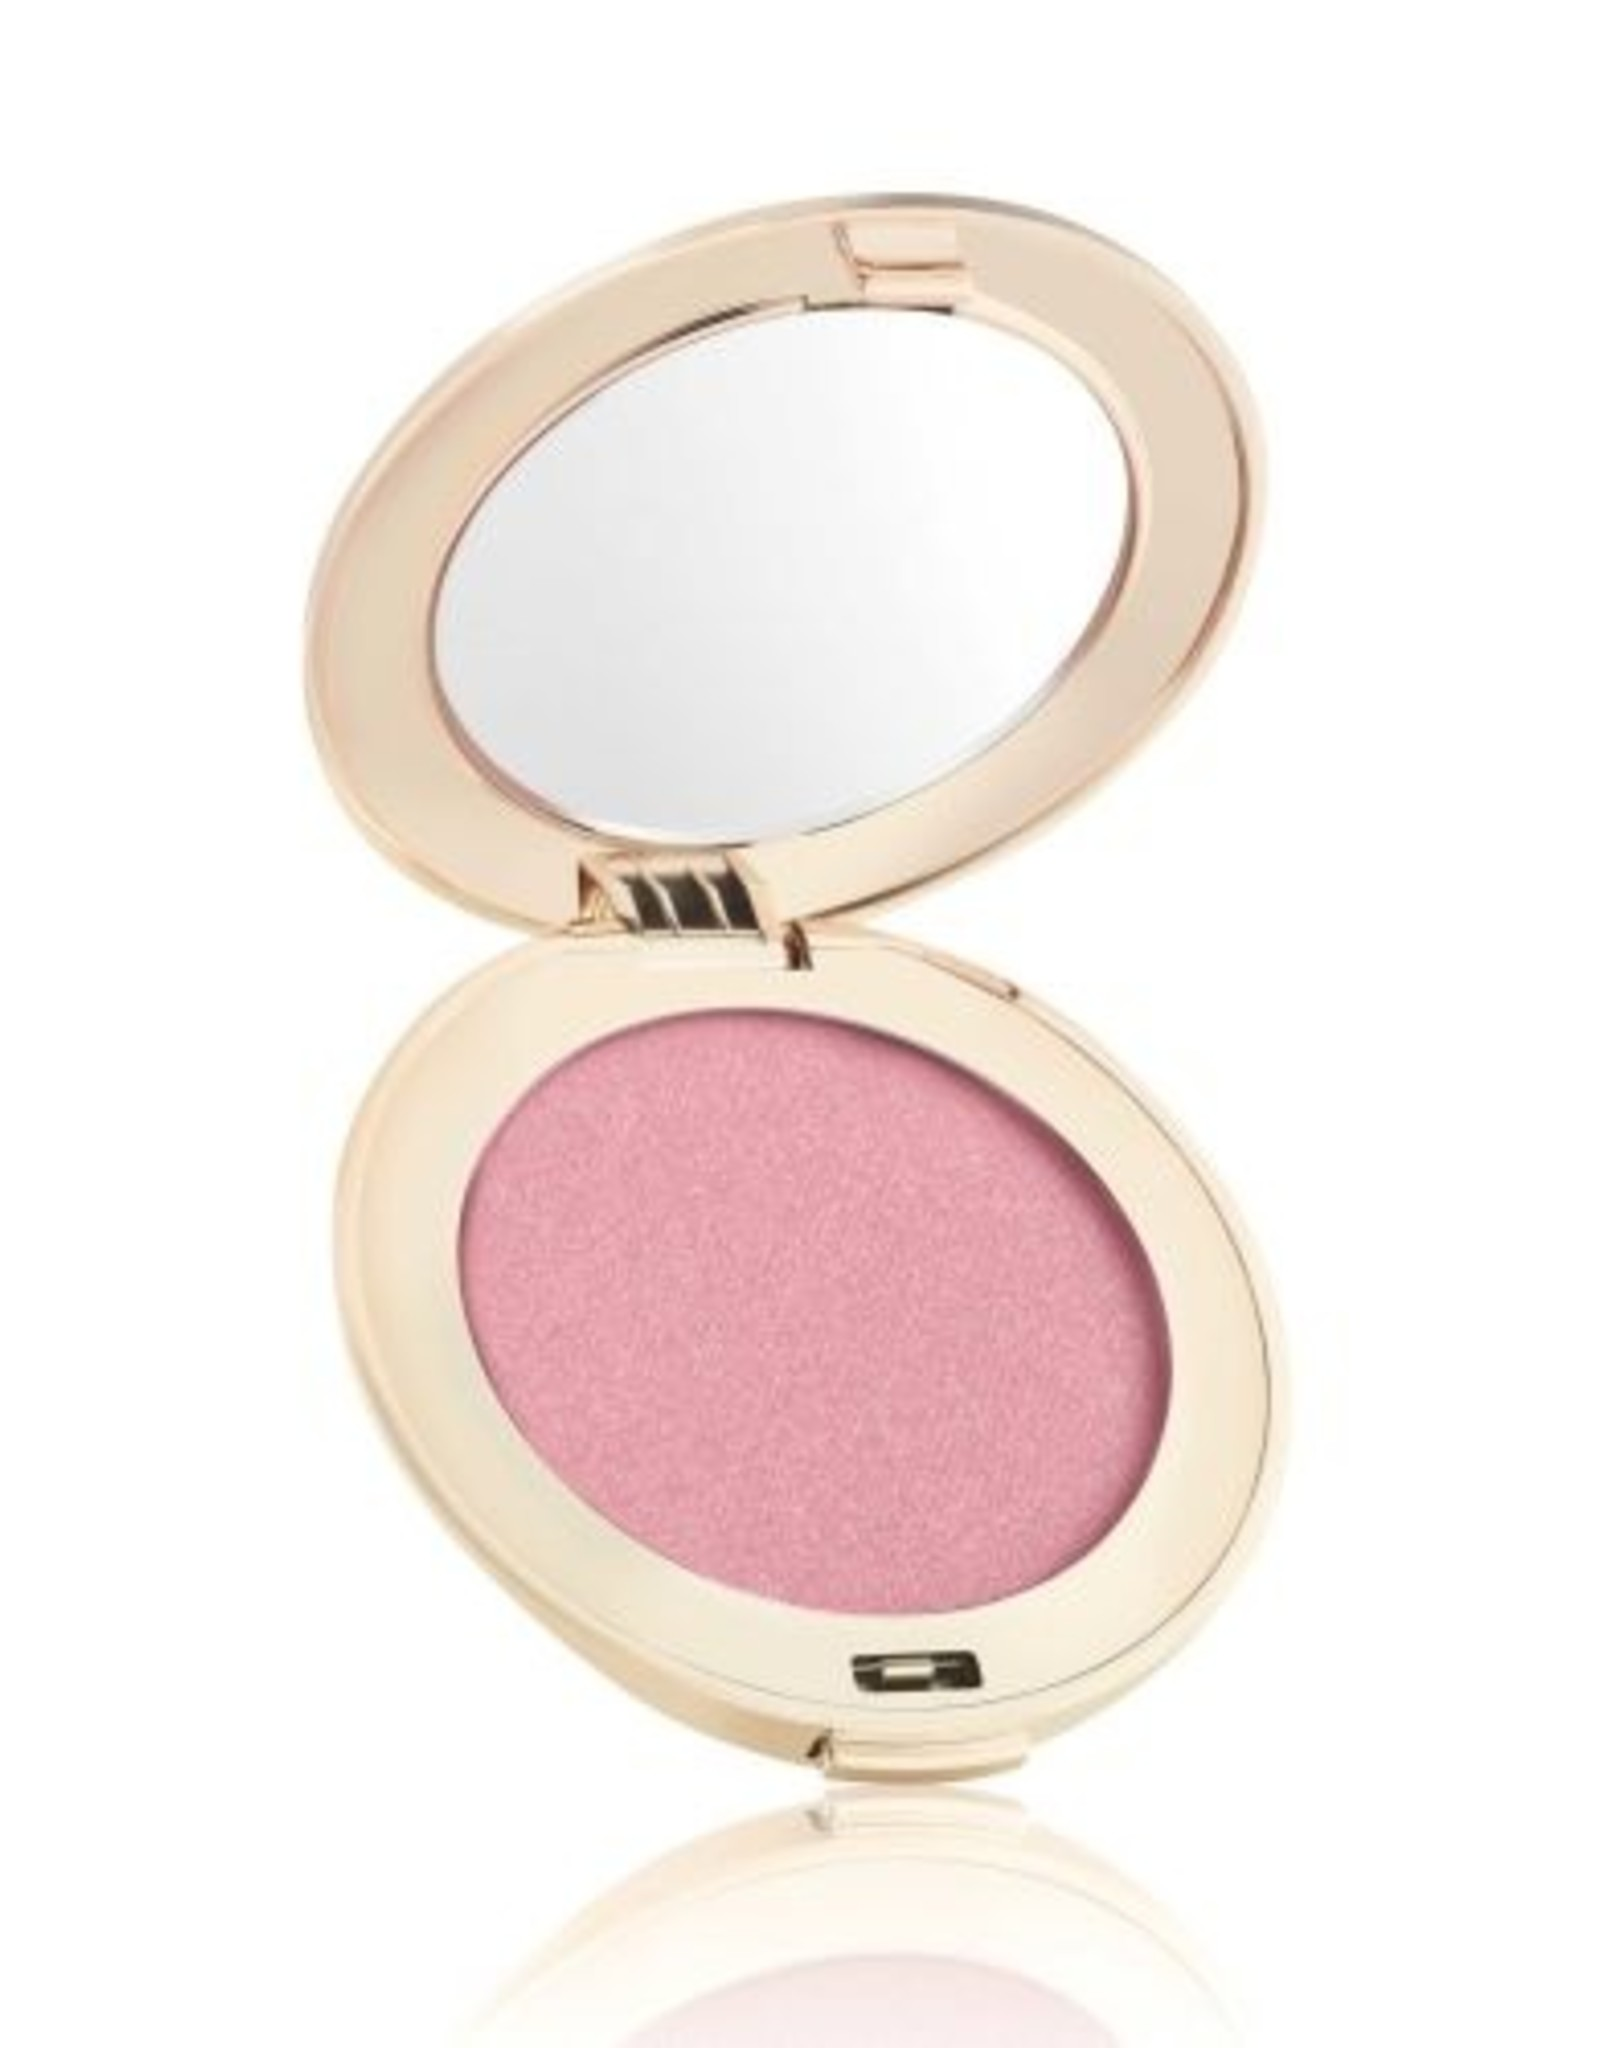 Jane Iredale Pure-Pressed Blush